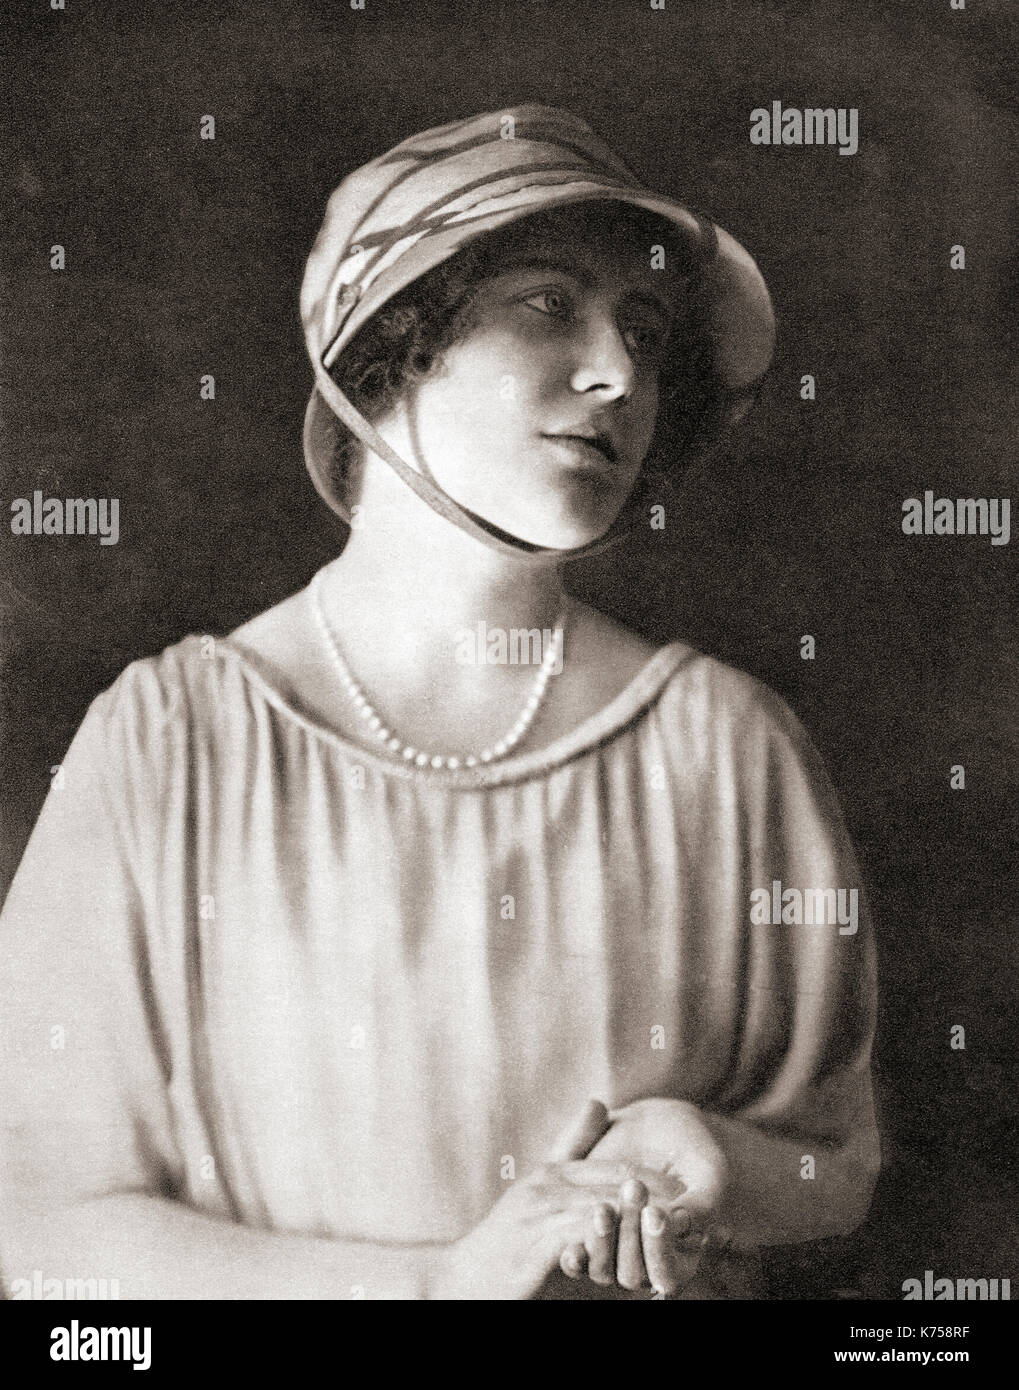 Lady  Elizabeth Angela Marguerite Bowes-Lyon, 1900 – 2002, seen here aged 21.  Future Duchess of York, Queen Elizabeth as wife of King George VI and mother of Queen Elizabeth II.  From The Coronation Book of King George VI and Queen Elizabeth, published 1937. - Stock Image